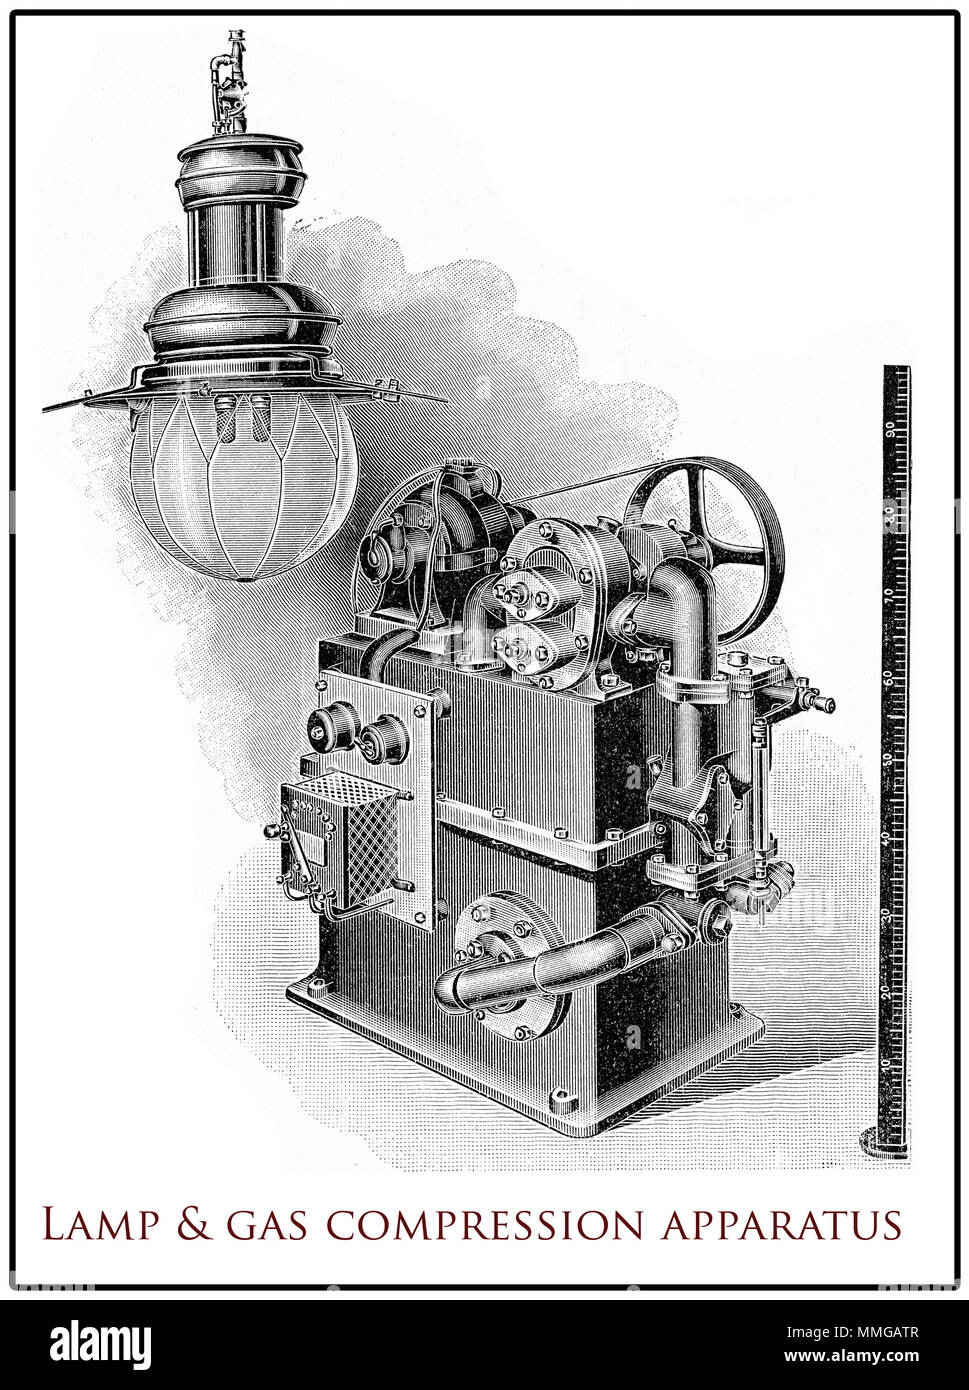 Vintage arc lamp with its gas compression regulator,  XIX century engraving - Stock Image